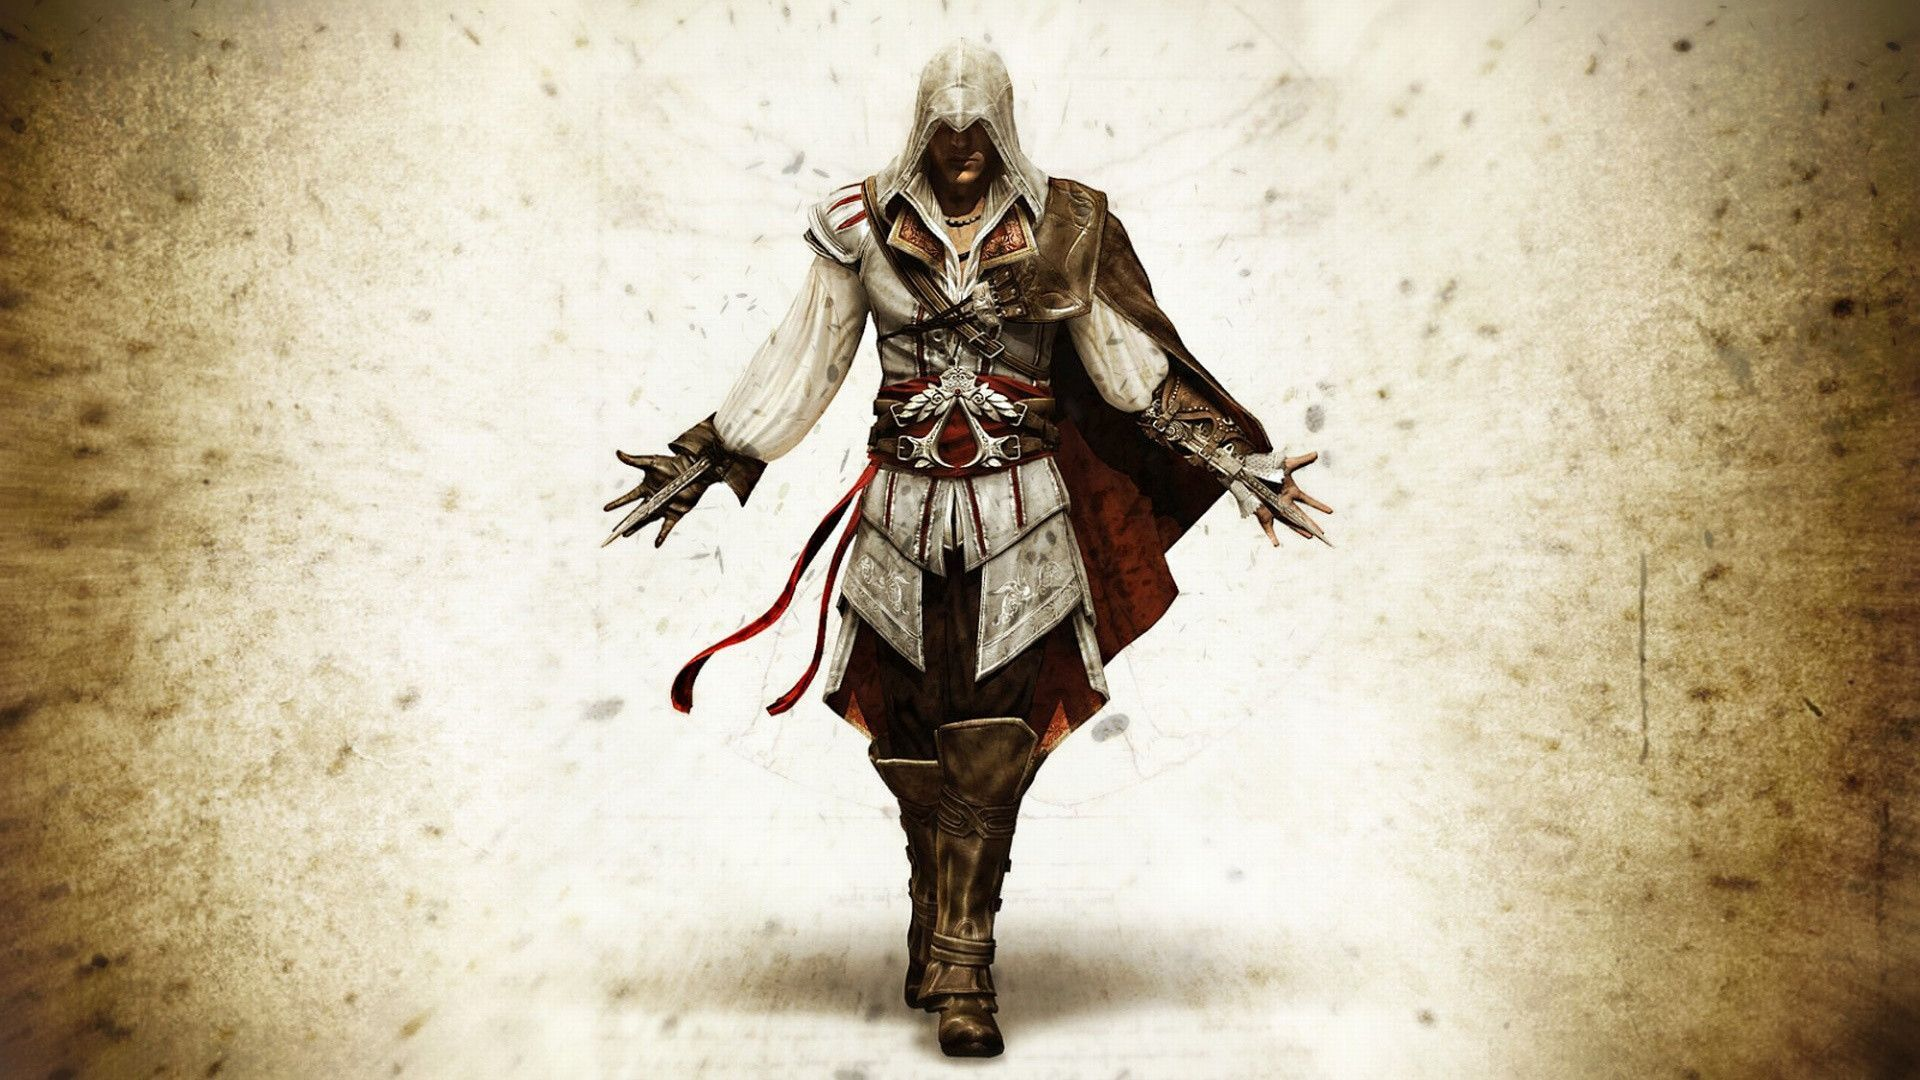 Assassins Creed Hd Wallpapers Wallpaper Assassin S Creed